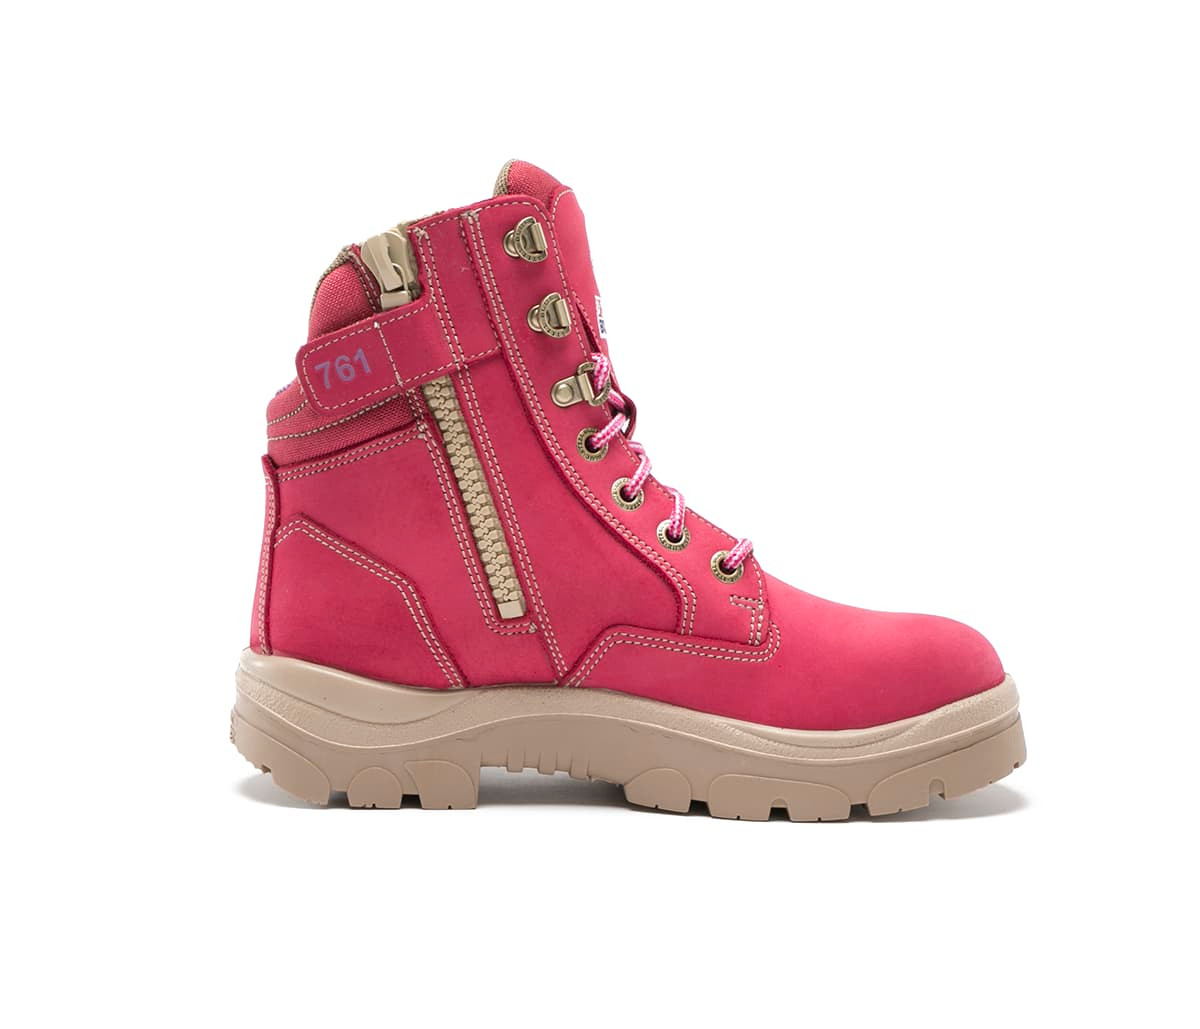 58d9405ecd7 Details about Steel Blue Southern Cross Zip Ladies Boots in Pink with Steel  Cap